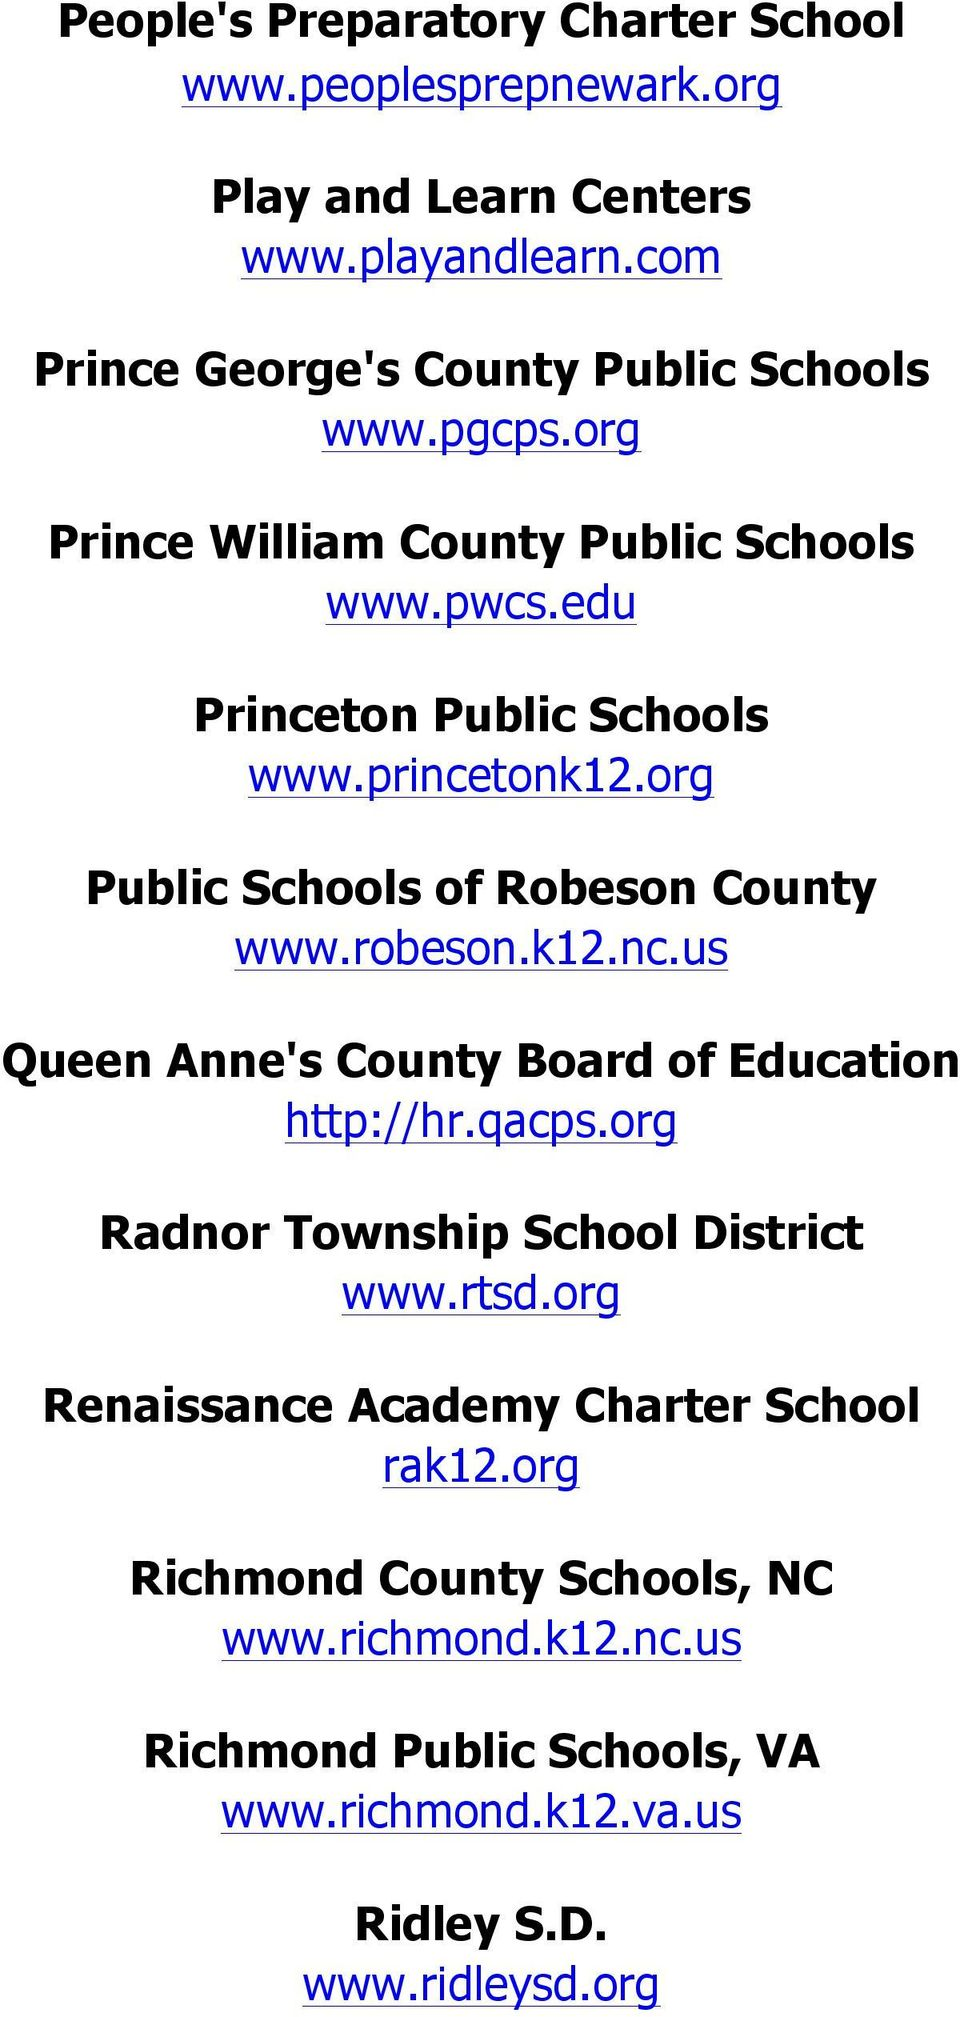 princetonk12.org Public Schools of Robeson County www.robeson.k12.nc.us Queen Anne's County Board of Education http://hr.qacps.